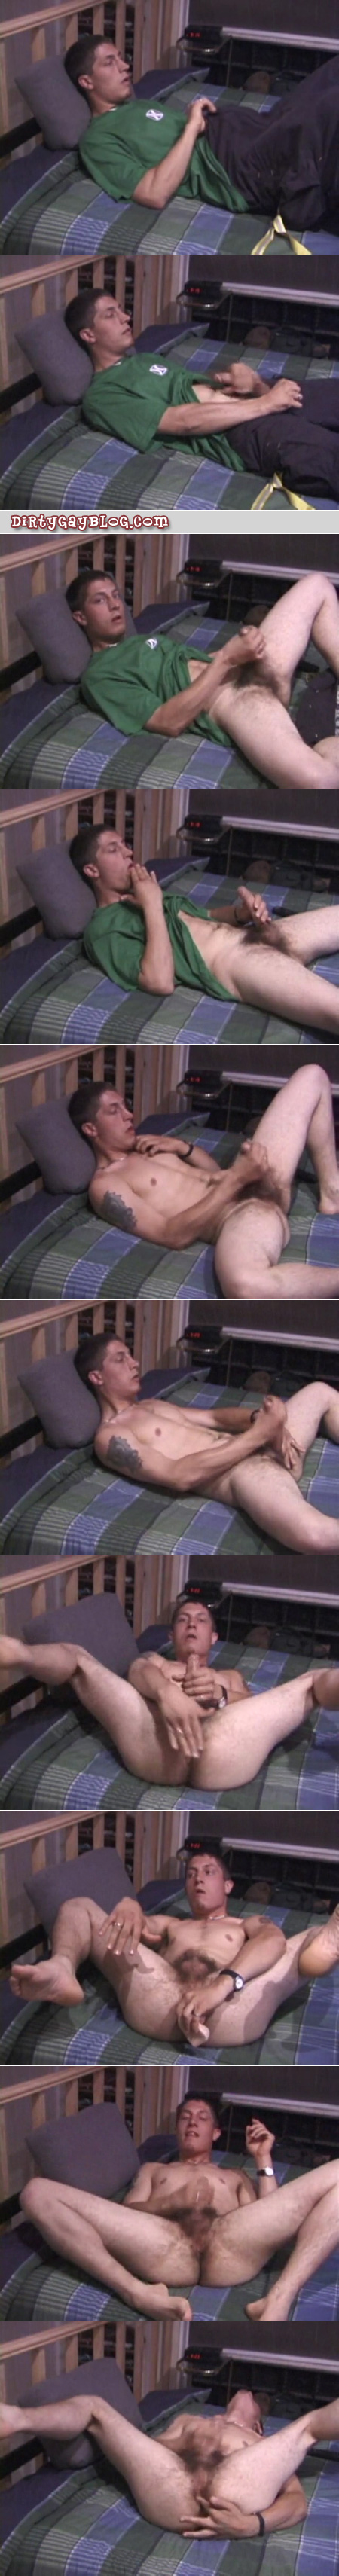 Hairy blonde straight guy jacking off with his spit while he plays with his ass.